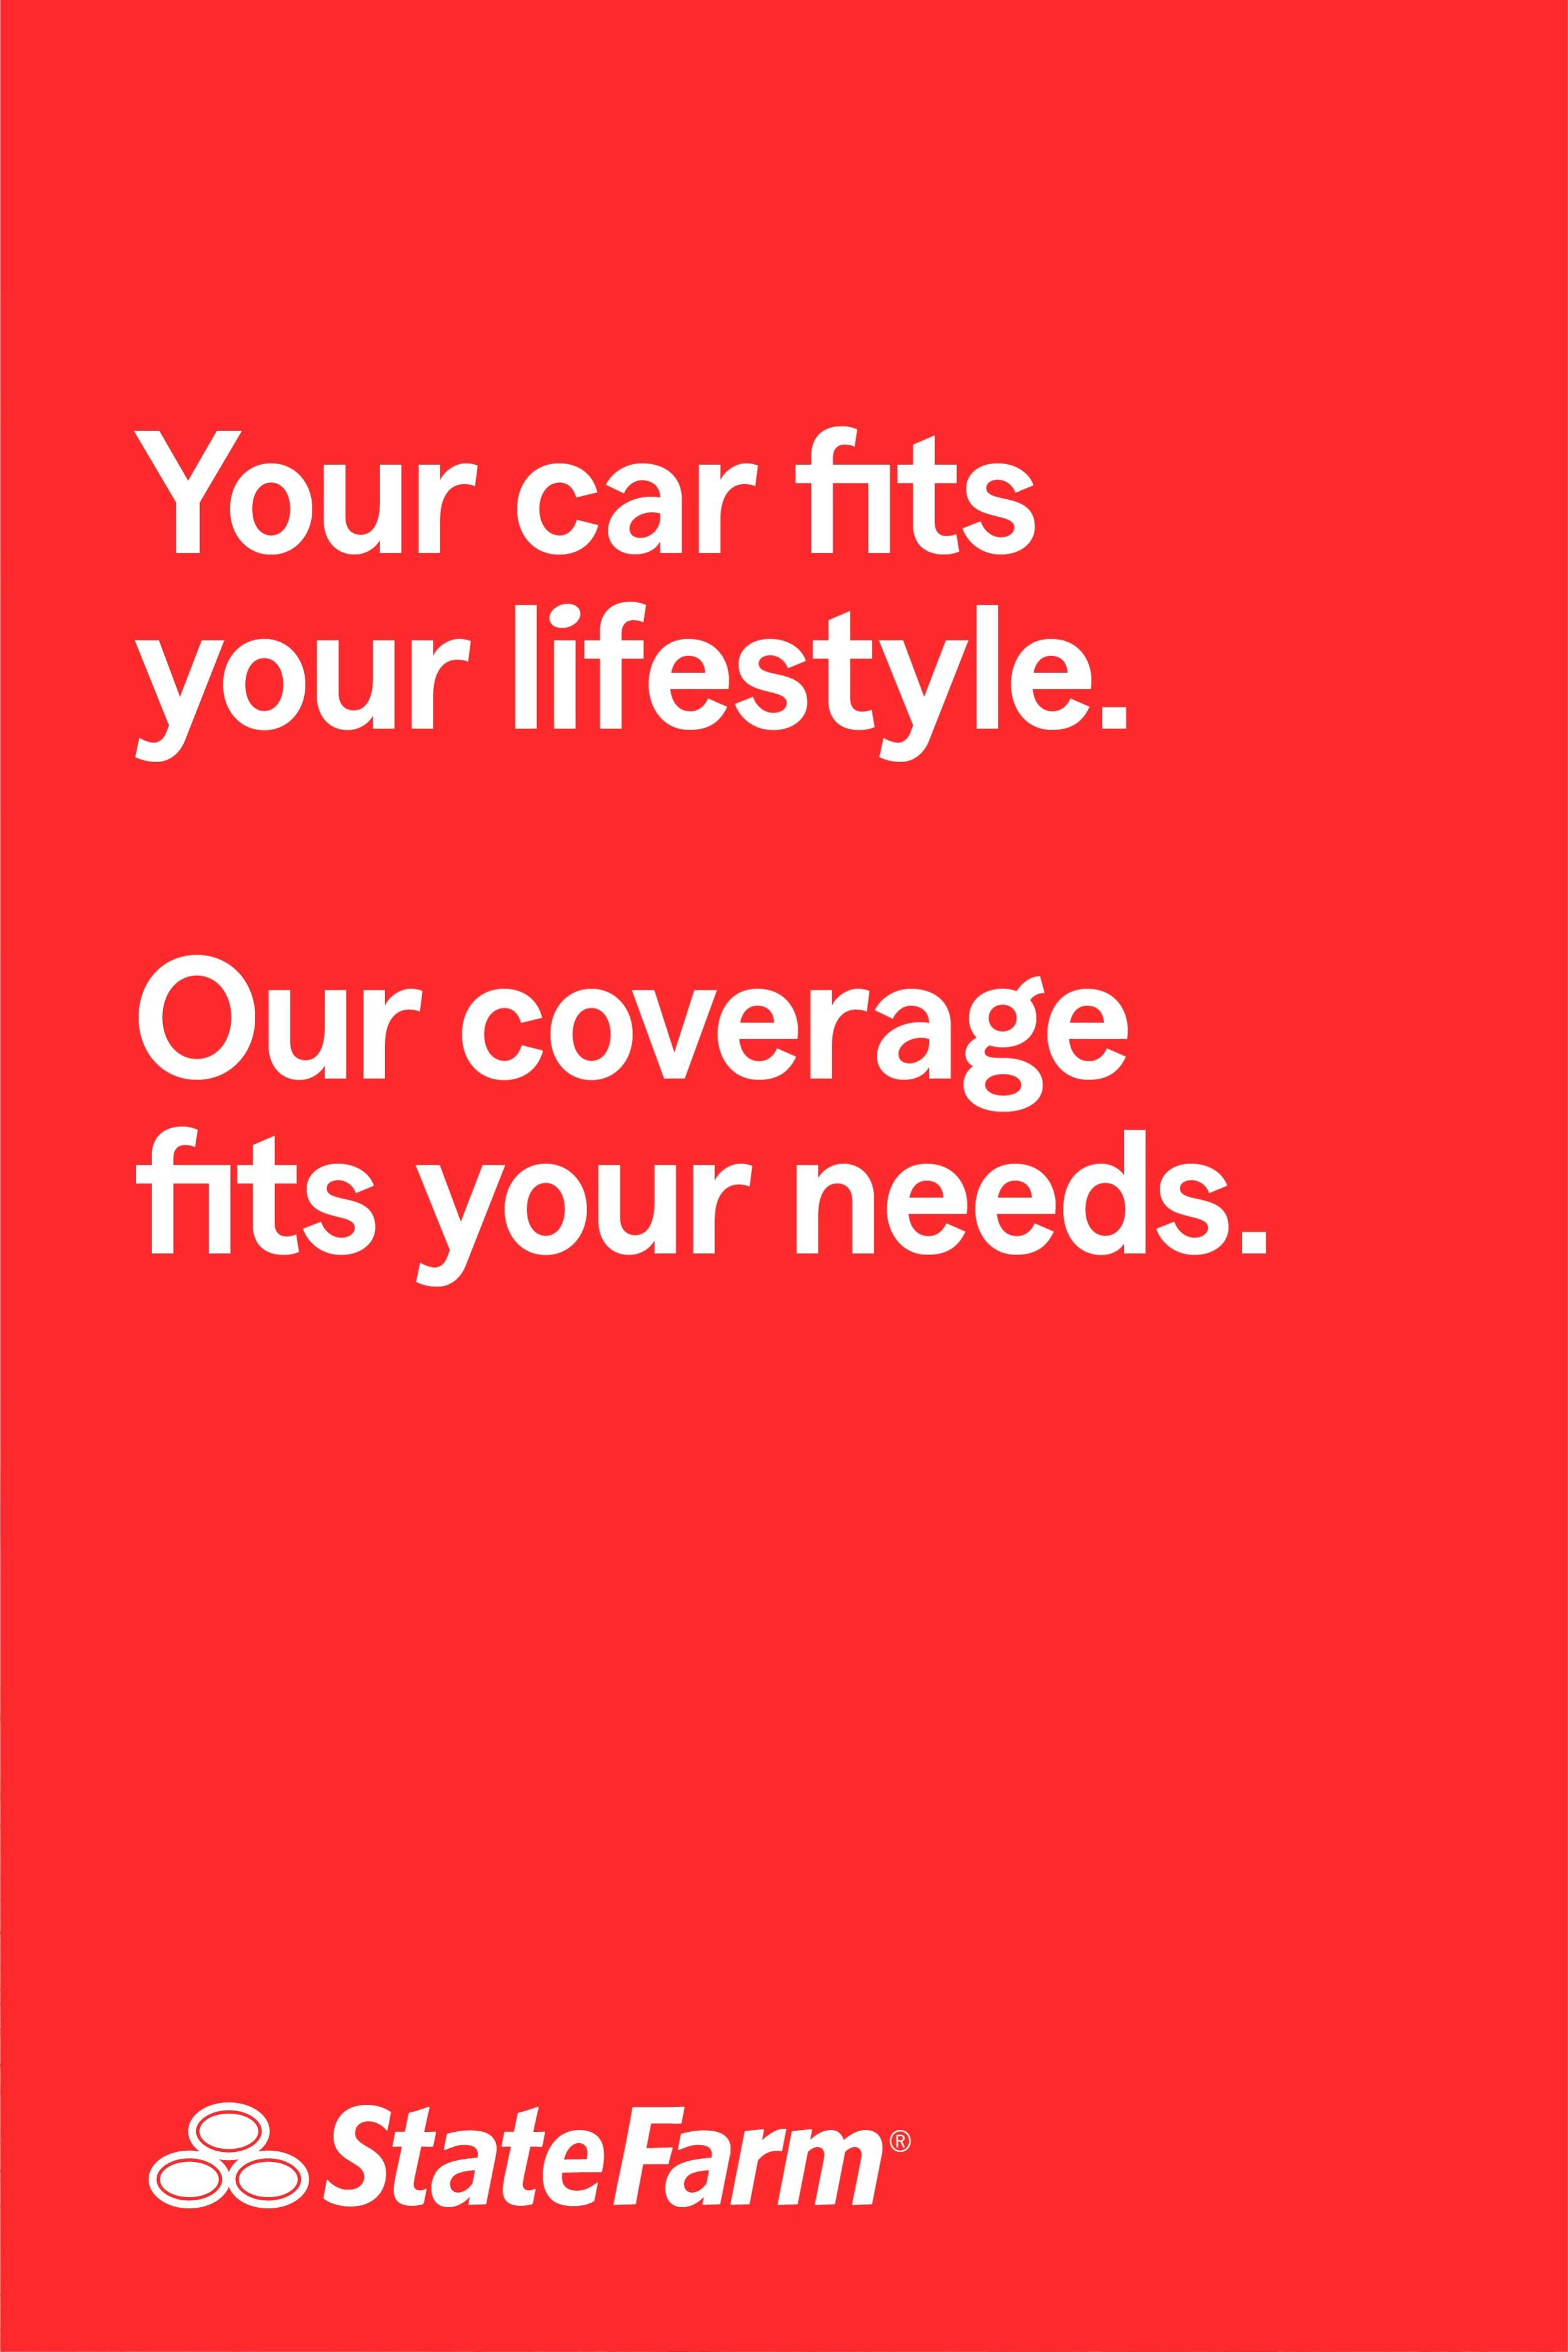 Cars come in a variety of makes and models. State Farm offers a variety of coverage options.